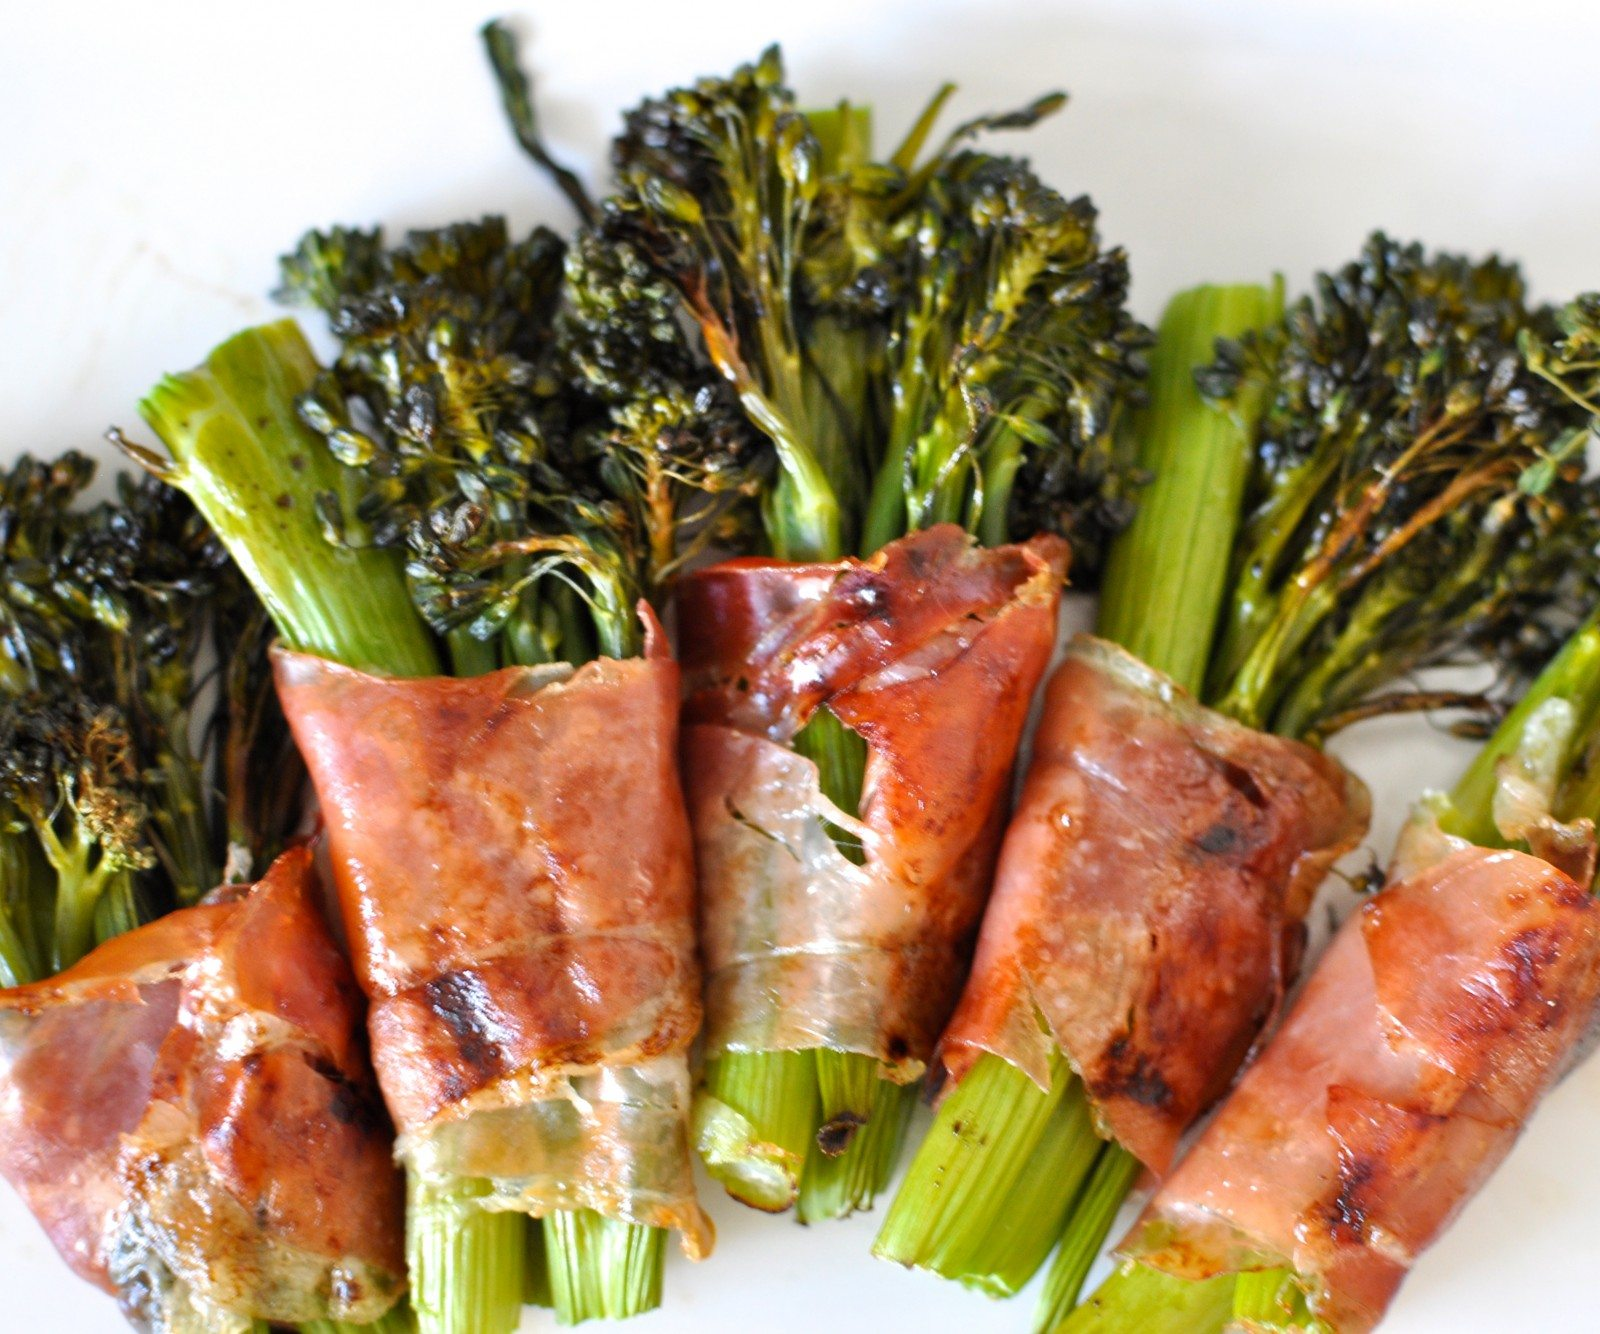 Roast broccolini & prosciutto bundles & win 1 of 5 $100 Woolworths gift vouchers